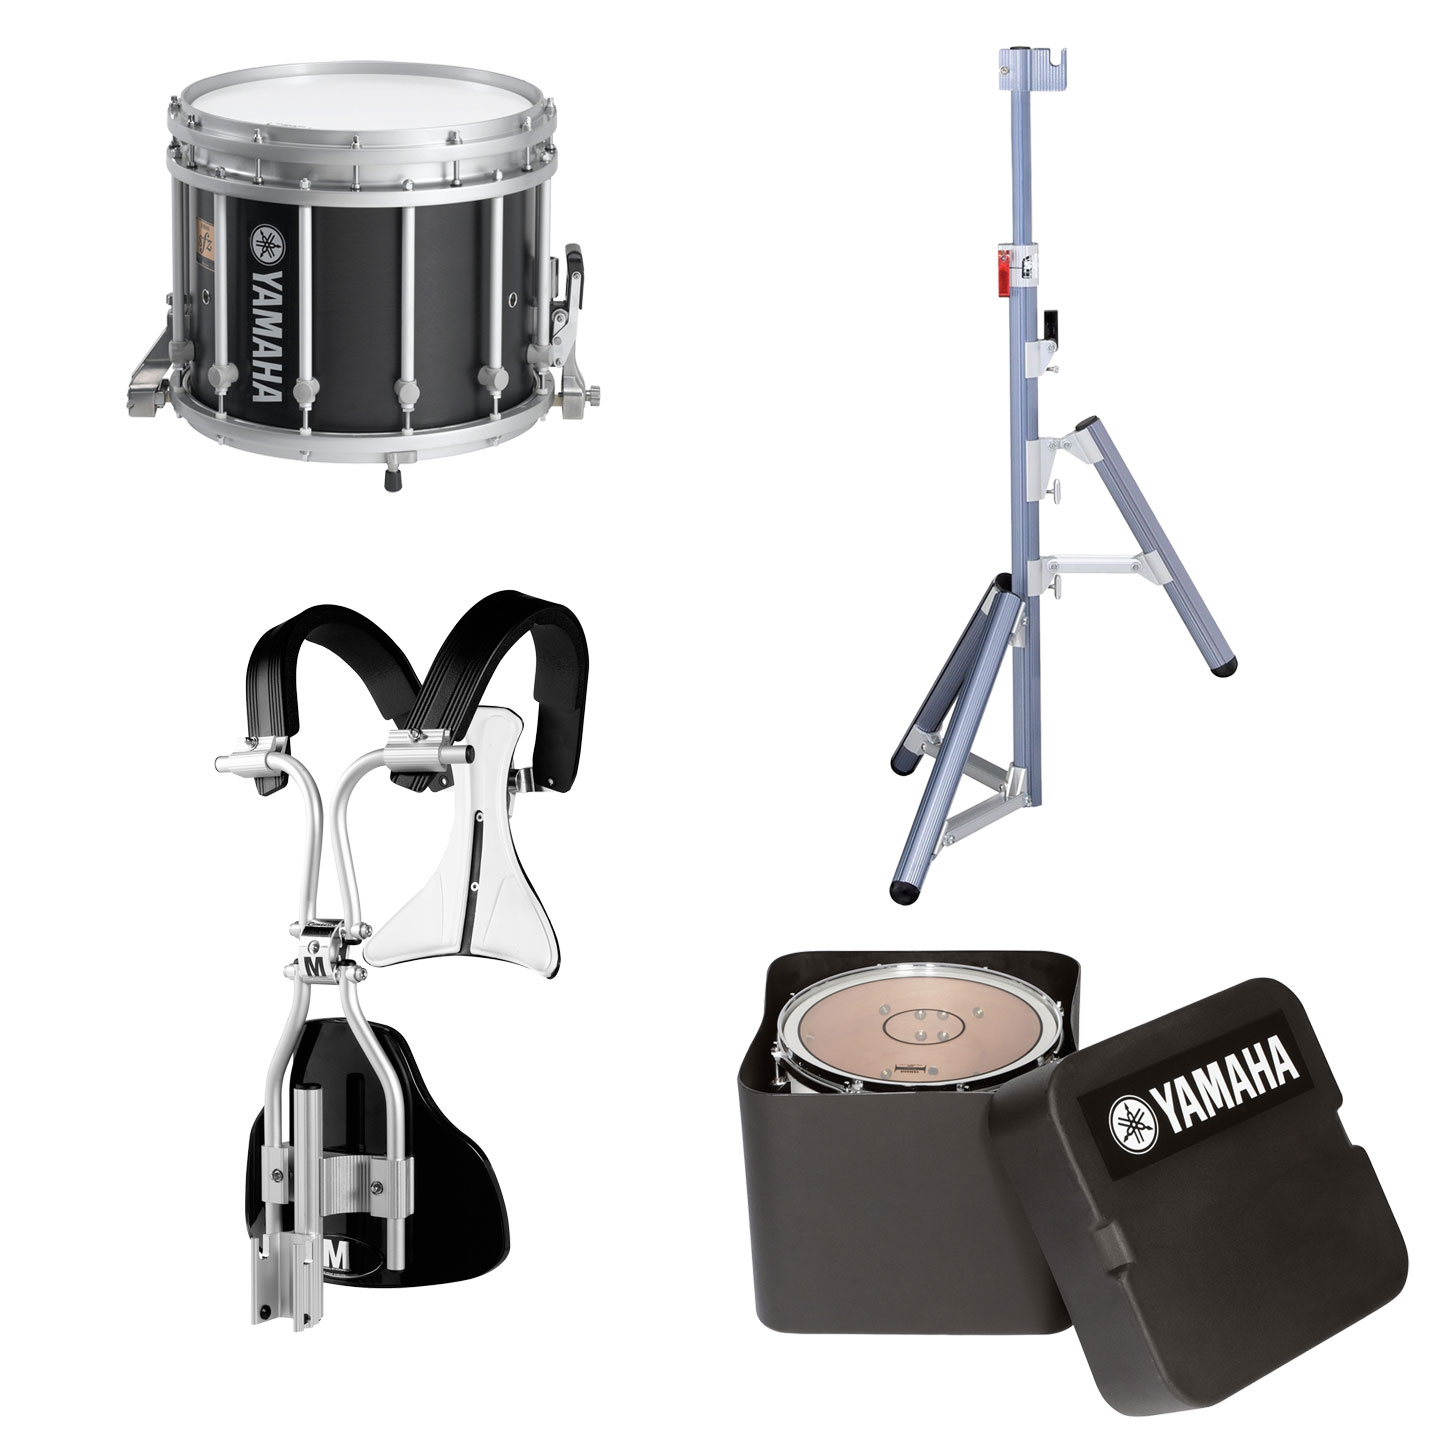 "Yamaha 13"" (Diameter) x 11"" (Deep) 9300 SFZ Marching Snare Drum with MonoPosto Carrier, Case, and Stand"